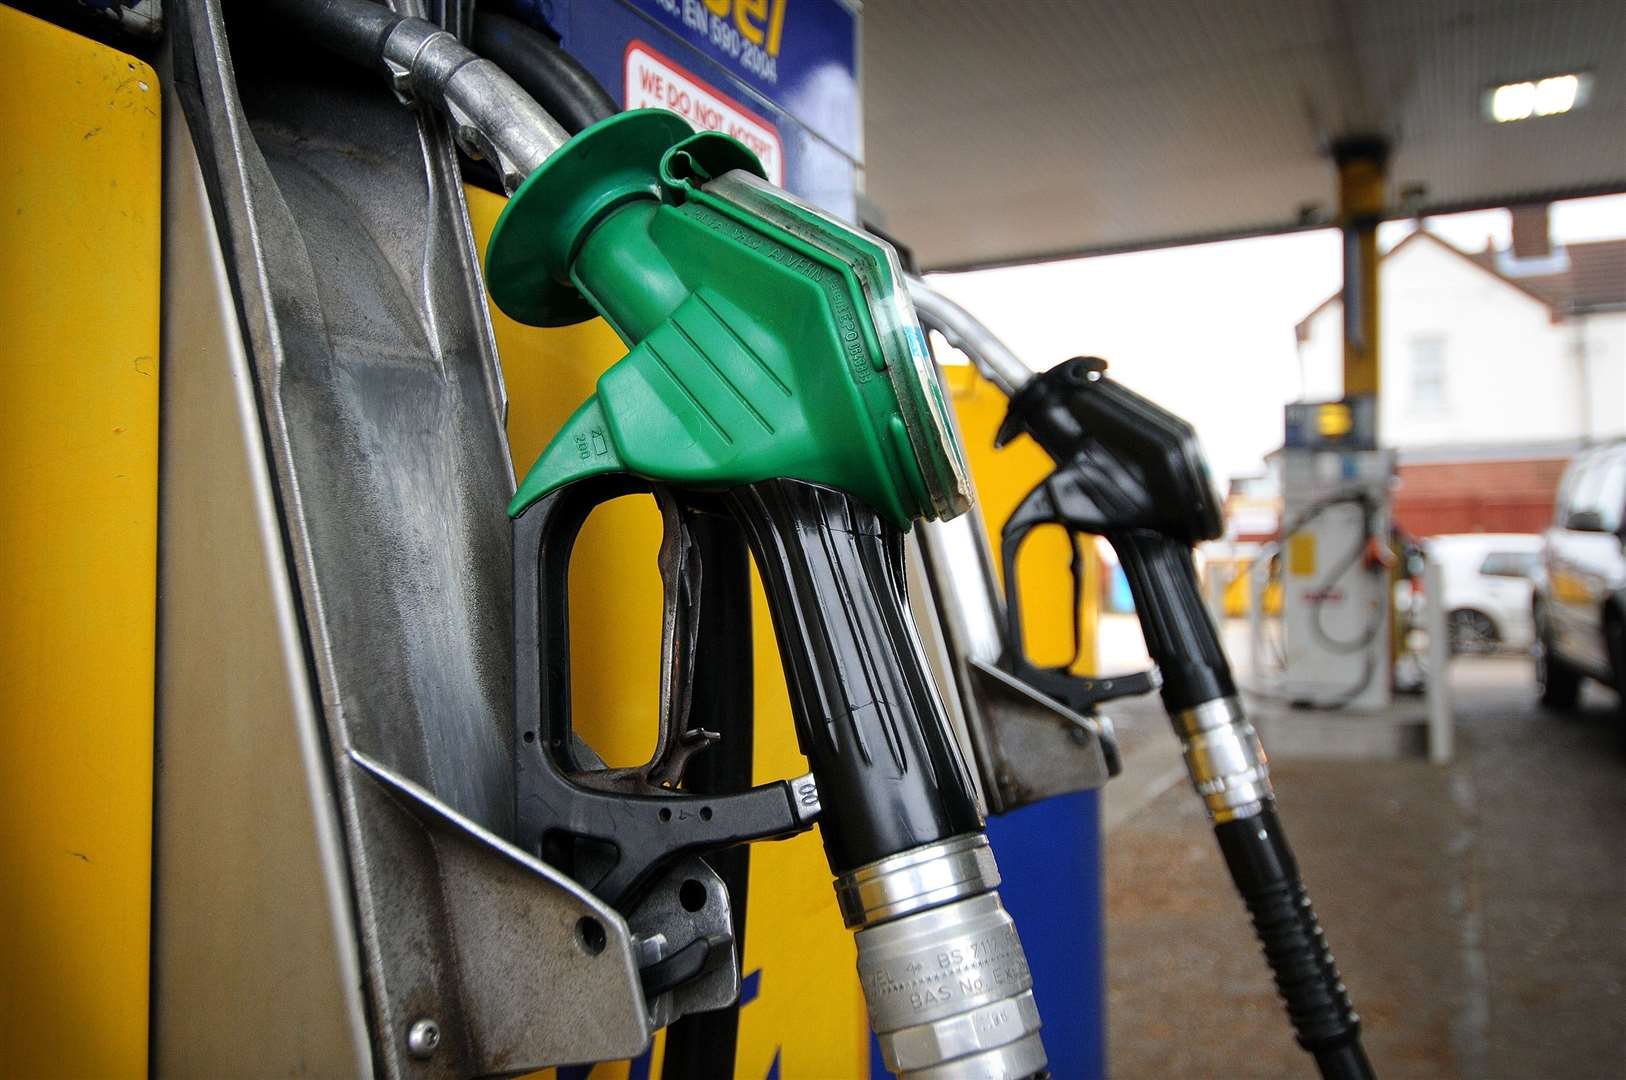 New diesel and petrol cars won't be able to be sold after 2030